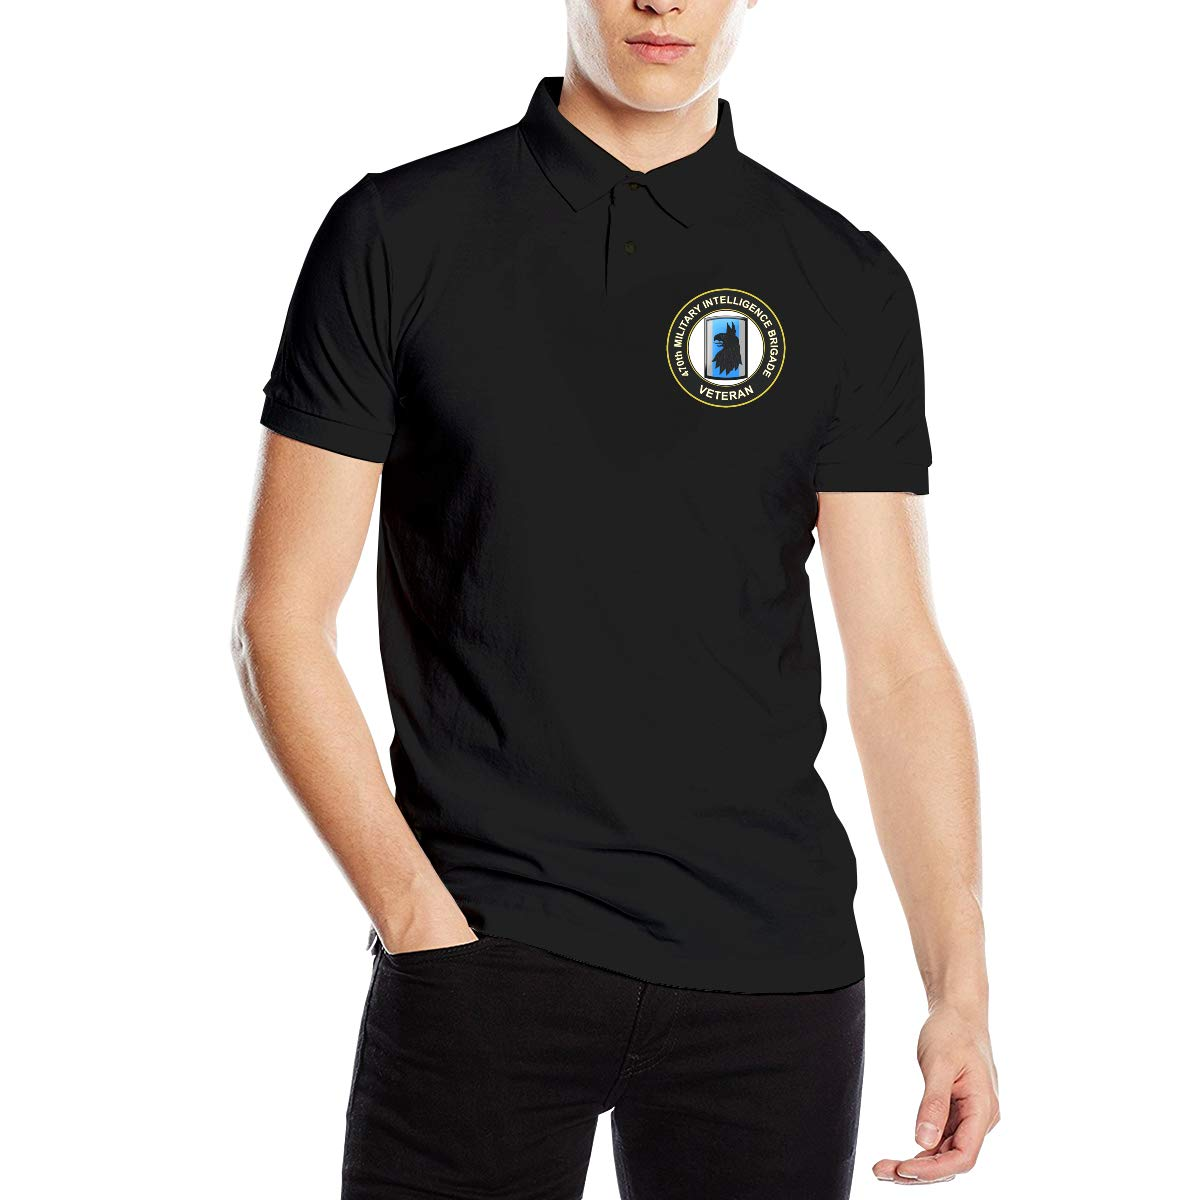 Army 470th Military Intelligence Brigade Veteran Mens Regular-Fit Cotton Polo Shirt Short Sleeve You Know And Good U.S